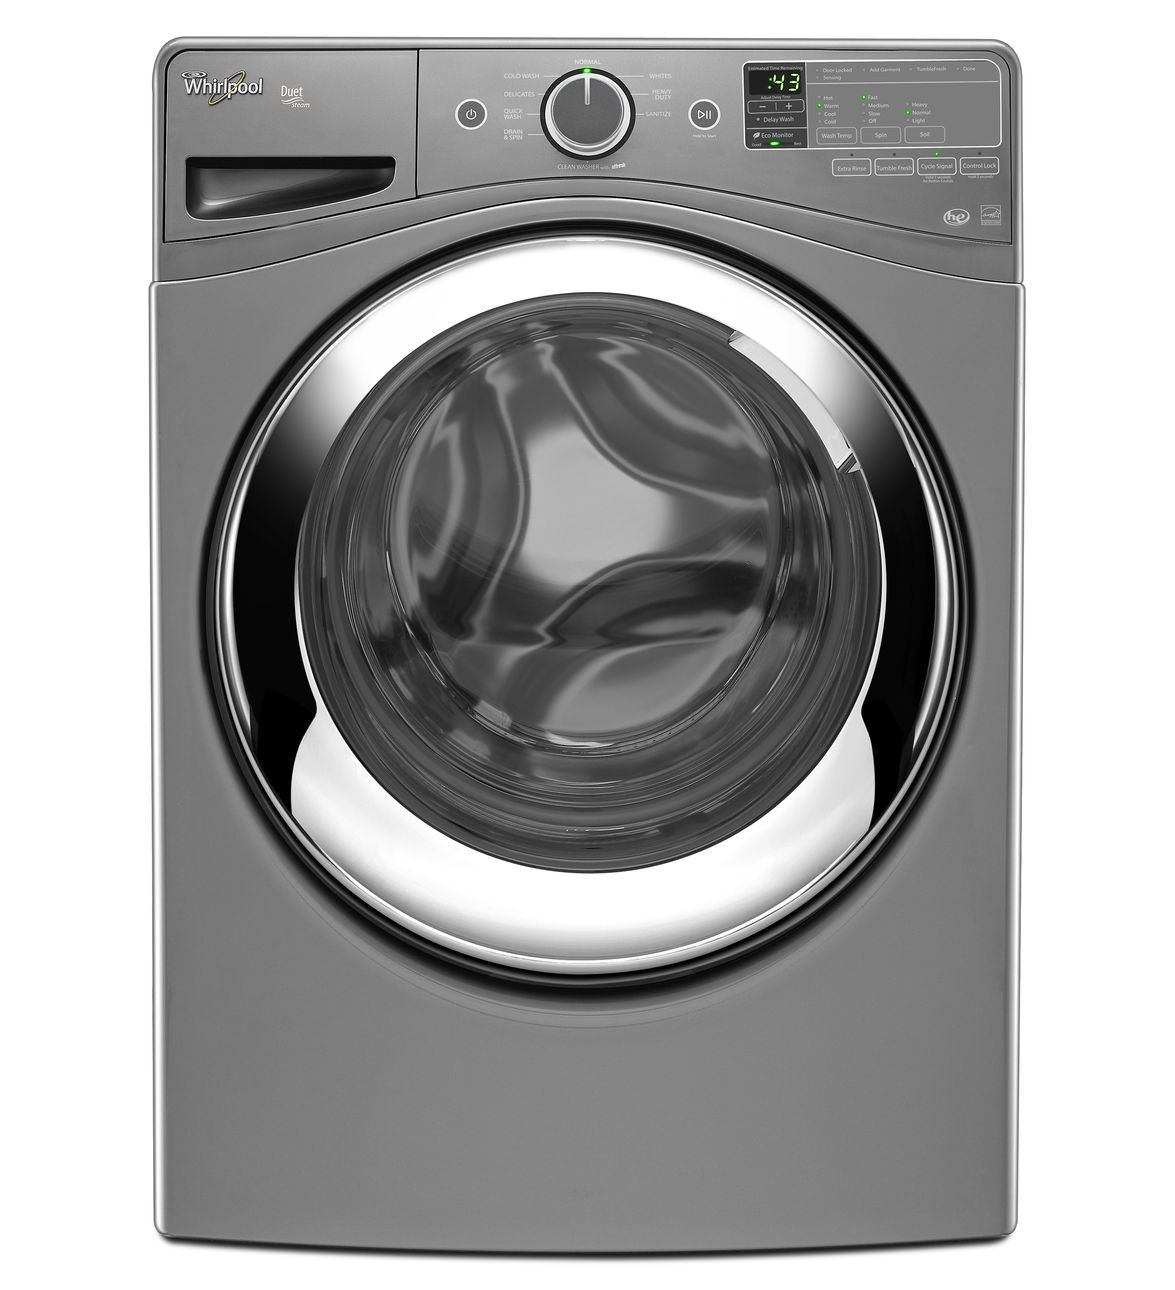 Whirlpool 4.3 cu. ft. Duet® Steam Front Load Washing